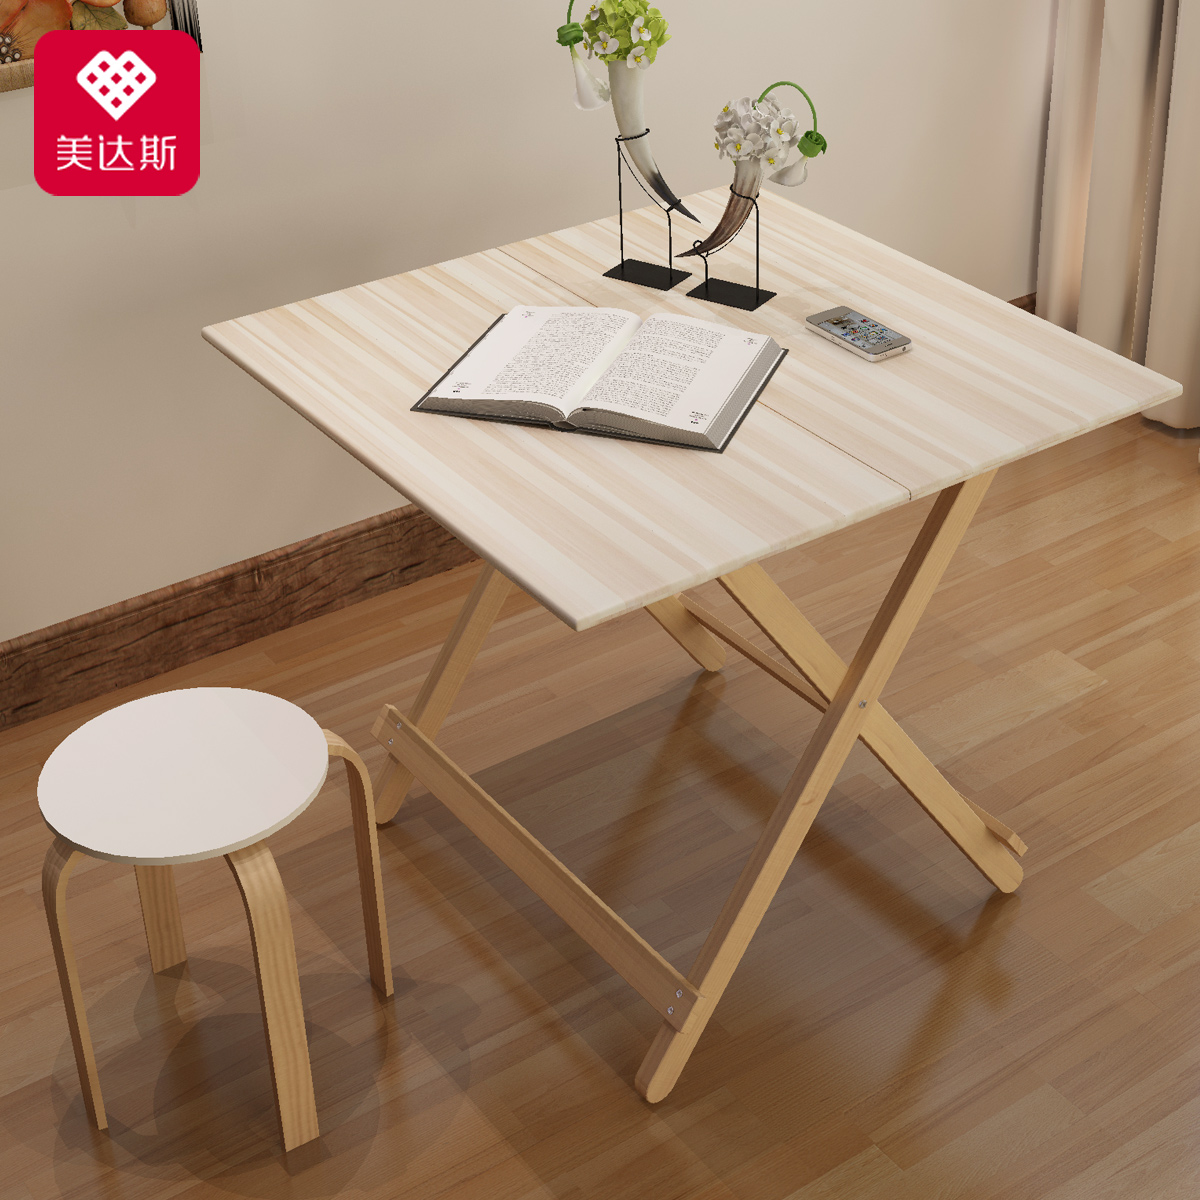 Us das wood folding table folding table dinner table table table can be home portable teapoy child simple small apartment square table